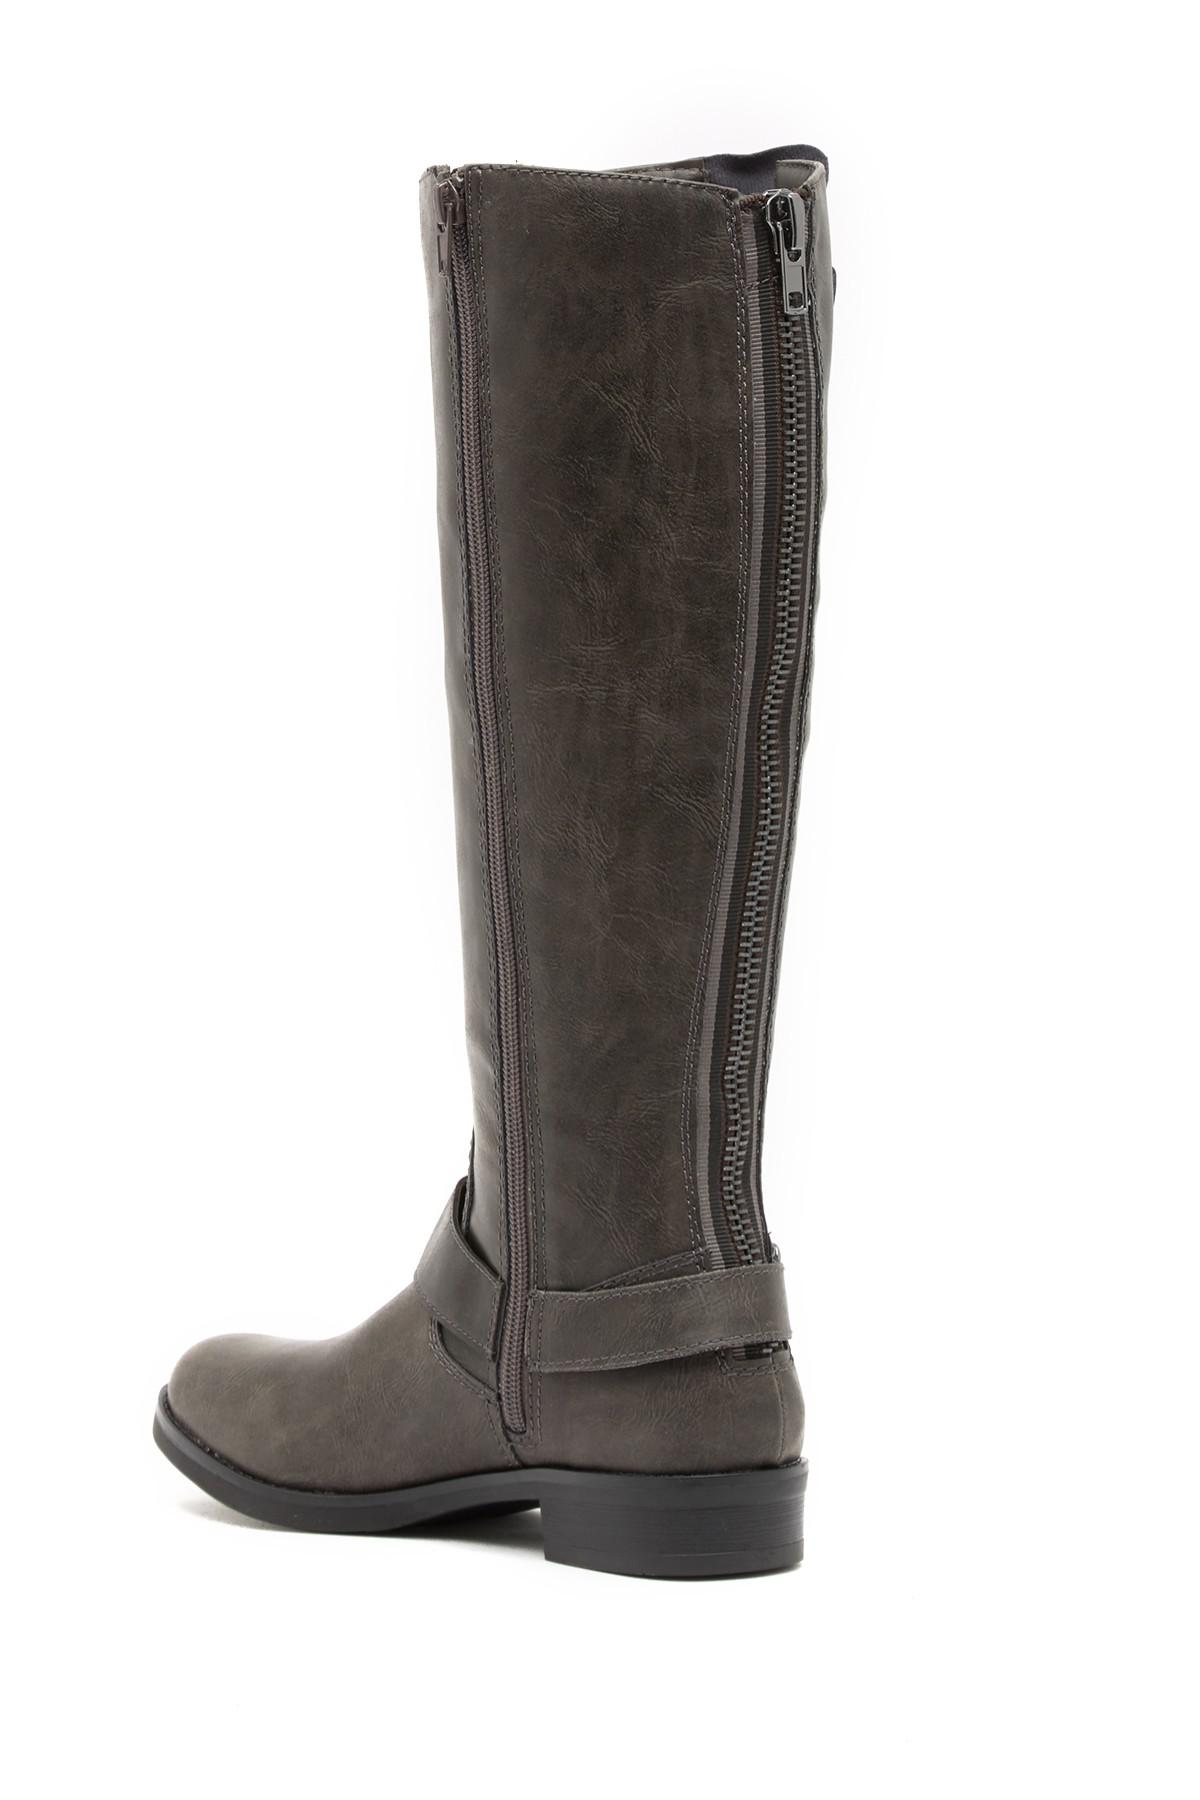 10c59a91018 Lyst - Madden Girl Fayettee Buckle Riding Boot